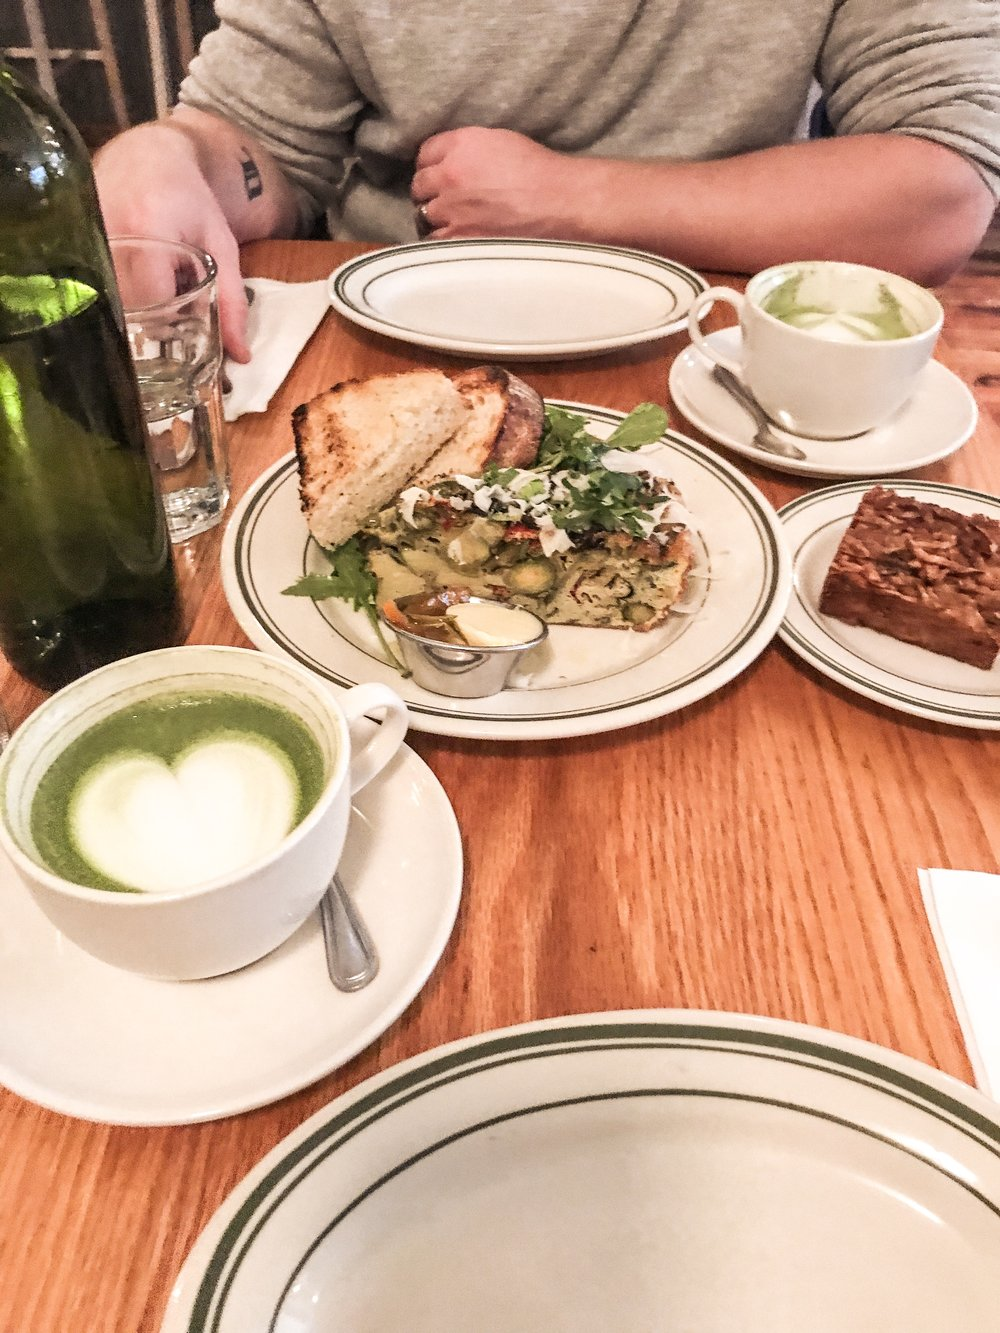 Matcha latte / Brussel Sprouts Frittata - it was hard for me to choose what I want because everything on the menu sounds so good. I had their Frittata and I enjoyed it, their Breakfast Salad is so popular, I'm going to have to try it next time!